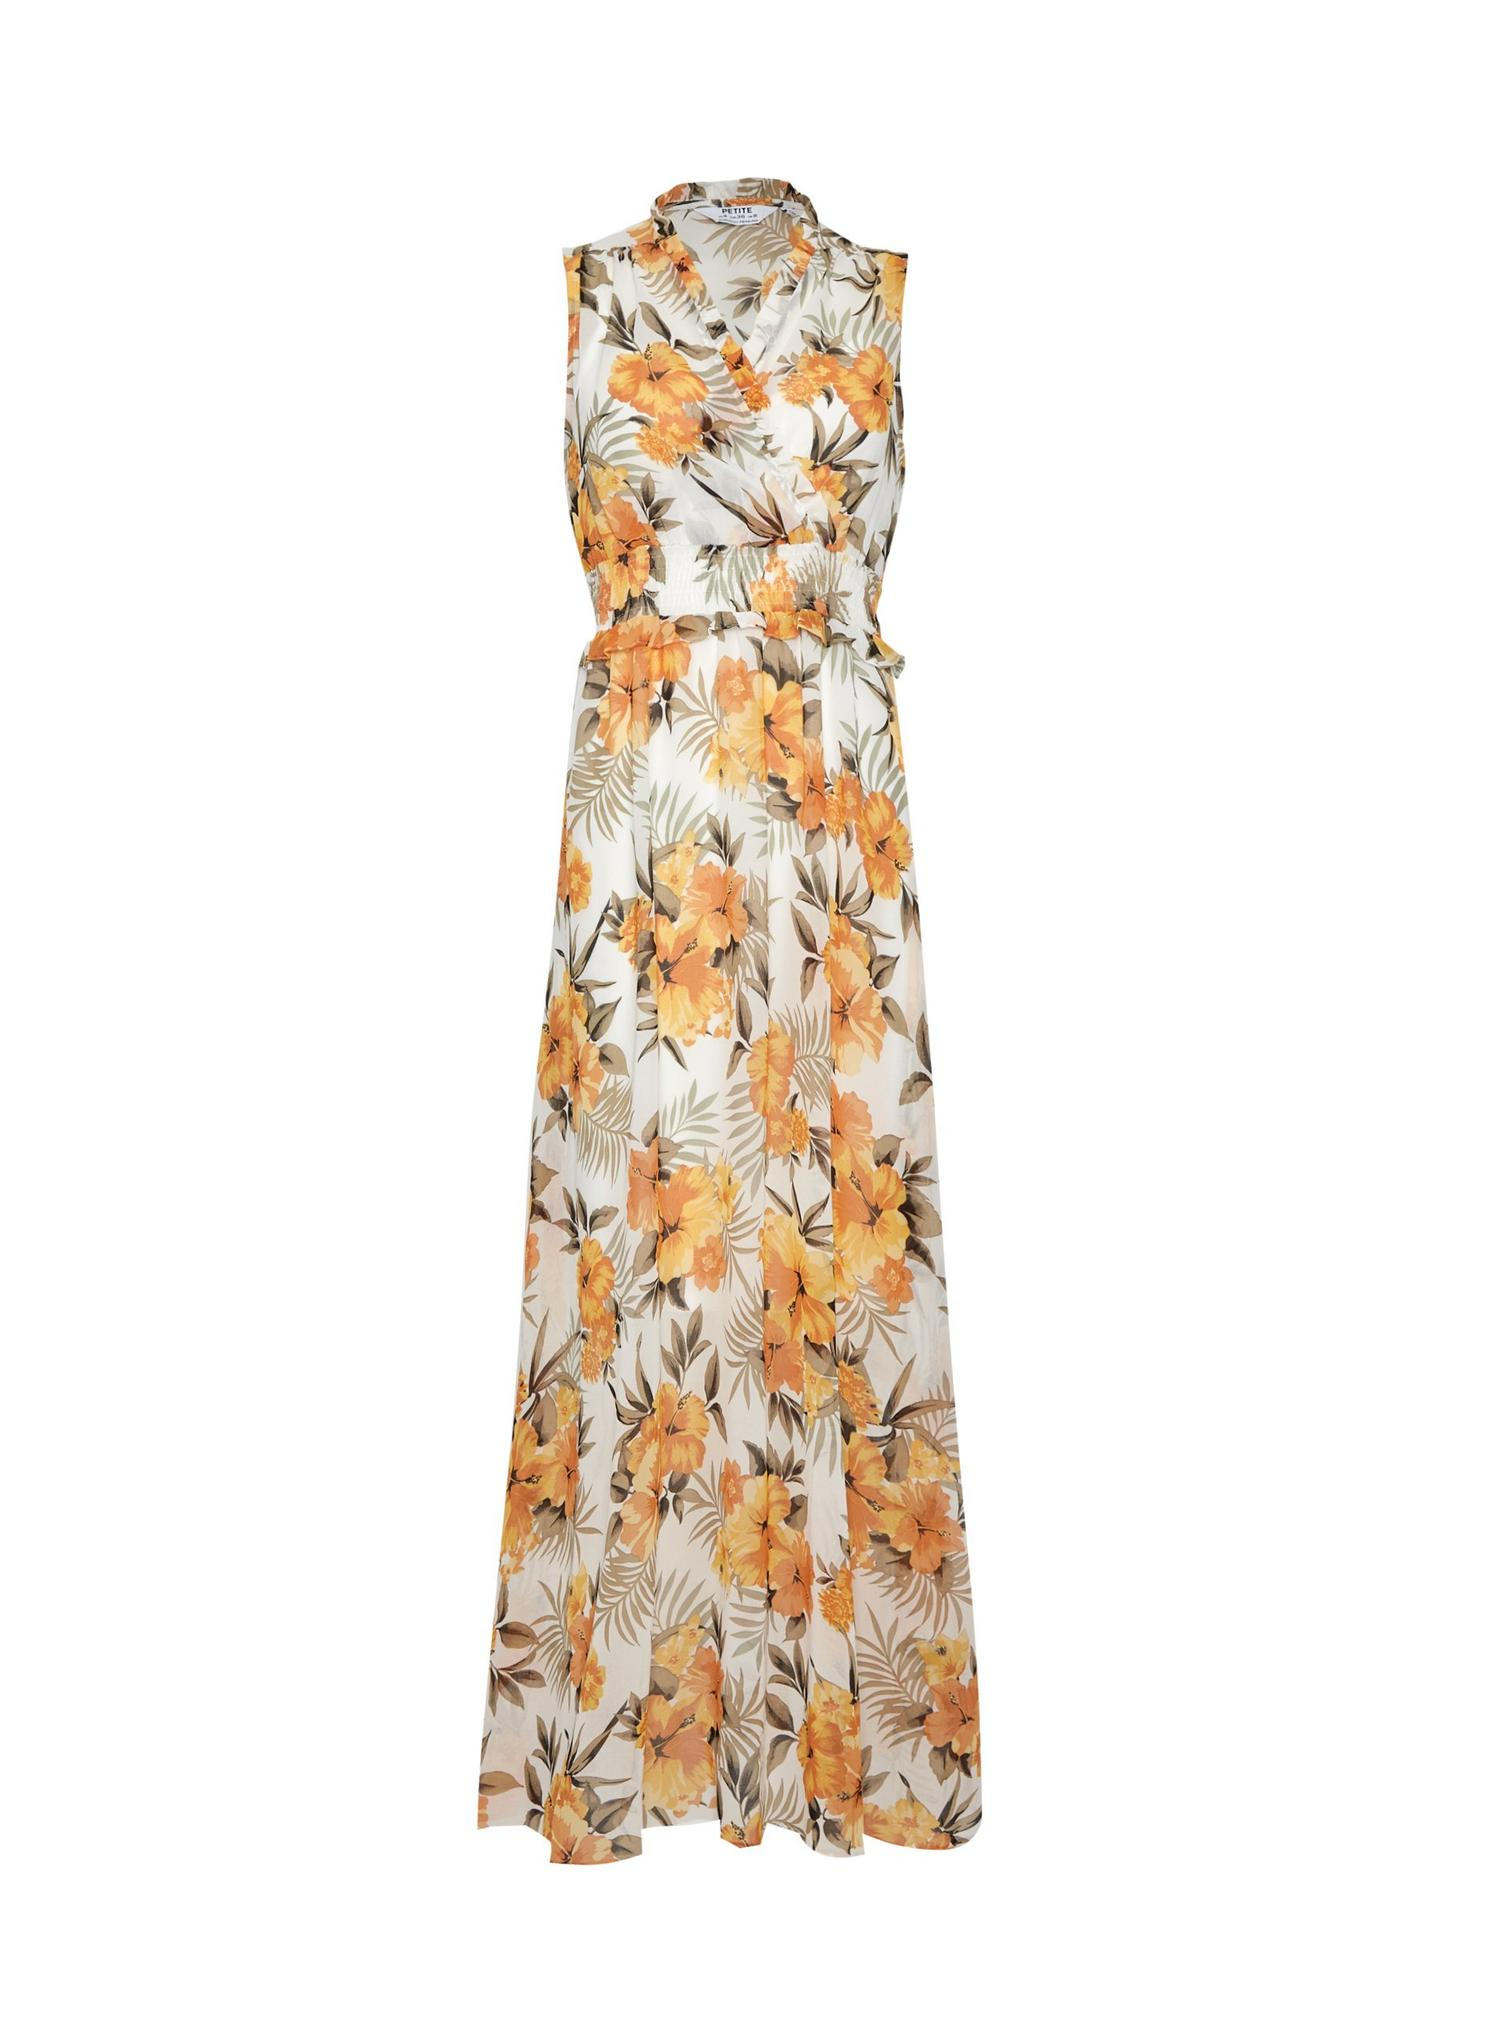 133 Petite Ochre Tropical Print Maxi Dress image number 2